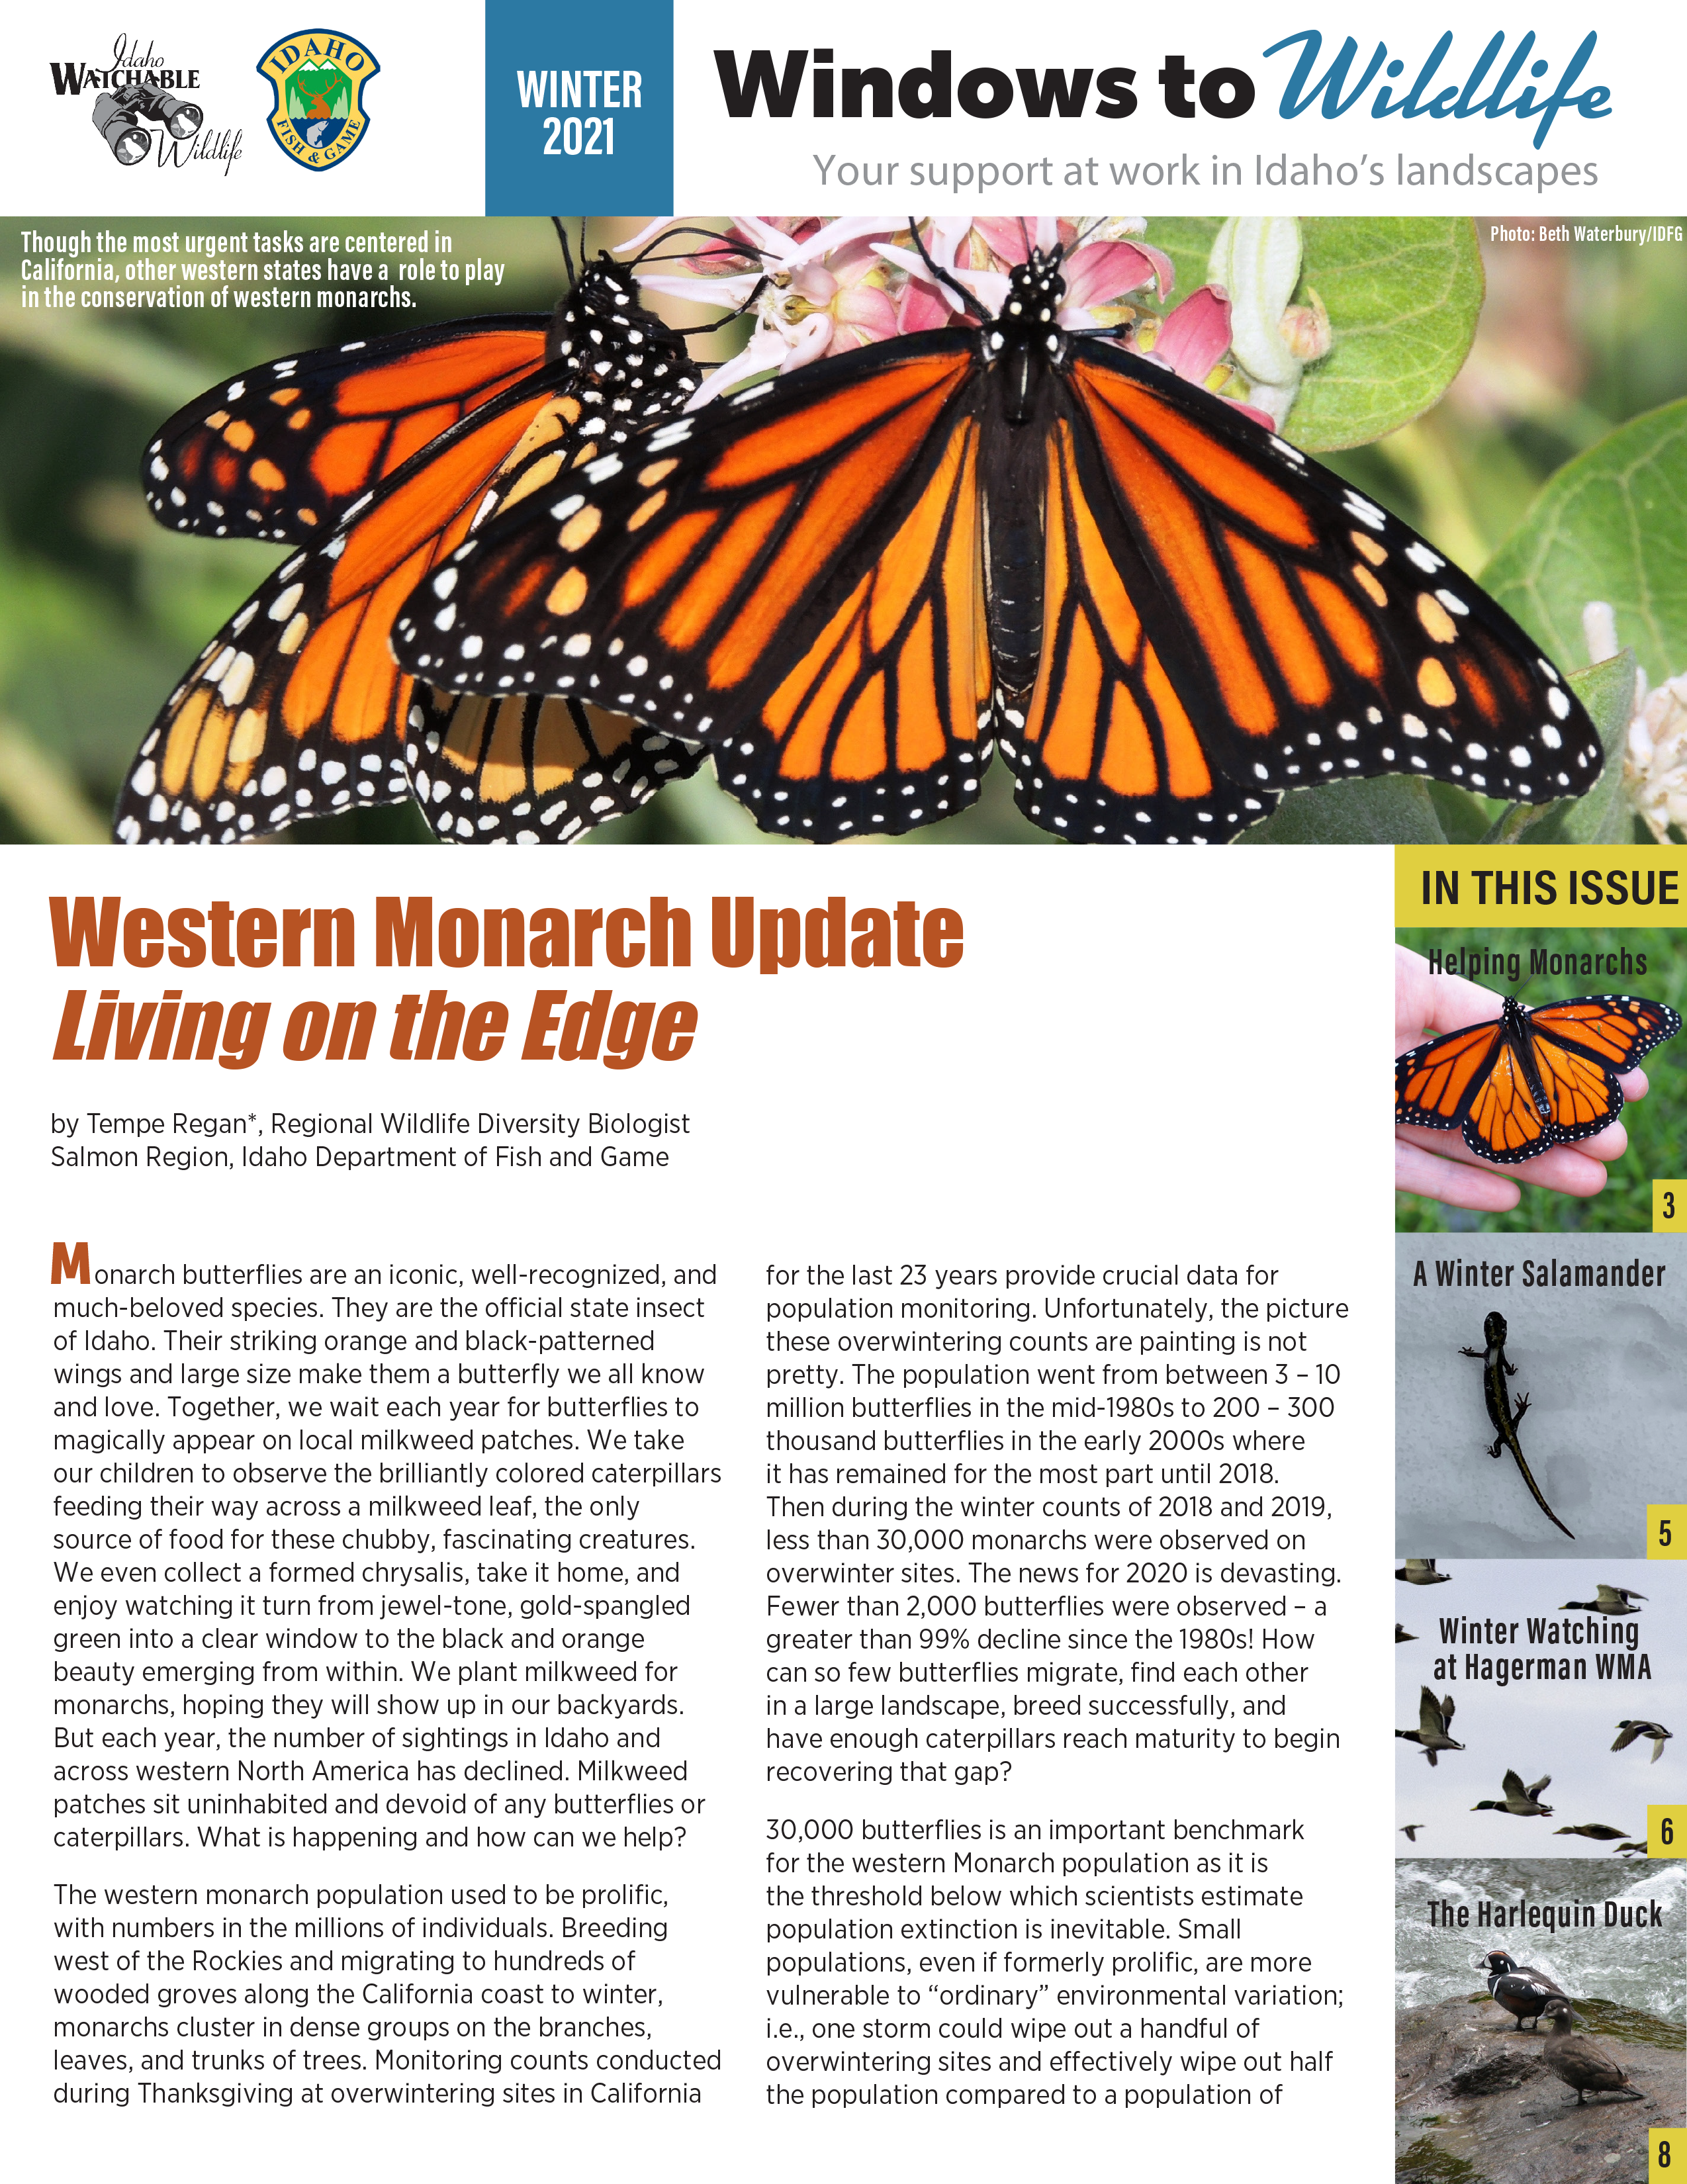 Windows to Wildlife newsletter cover with a large banner photo of Monarch butterflies